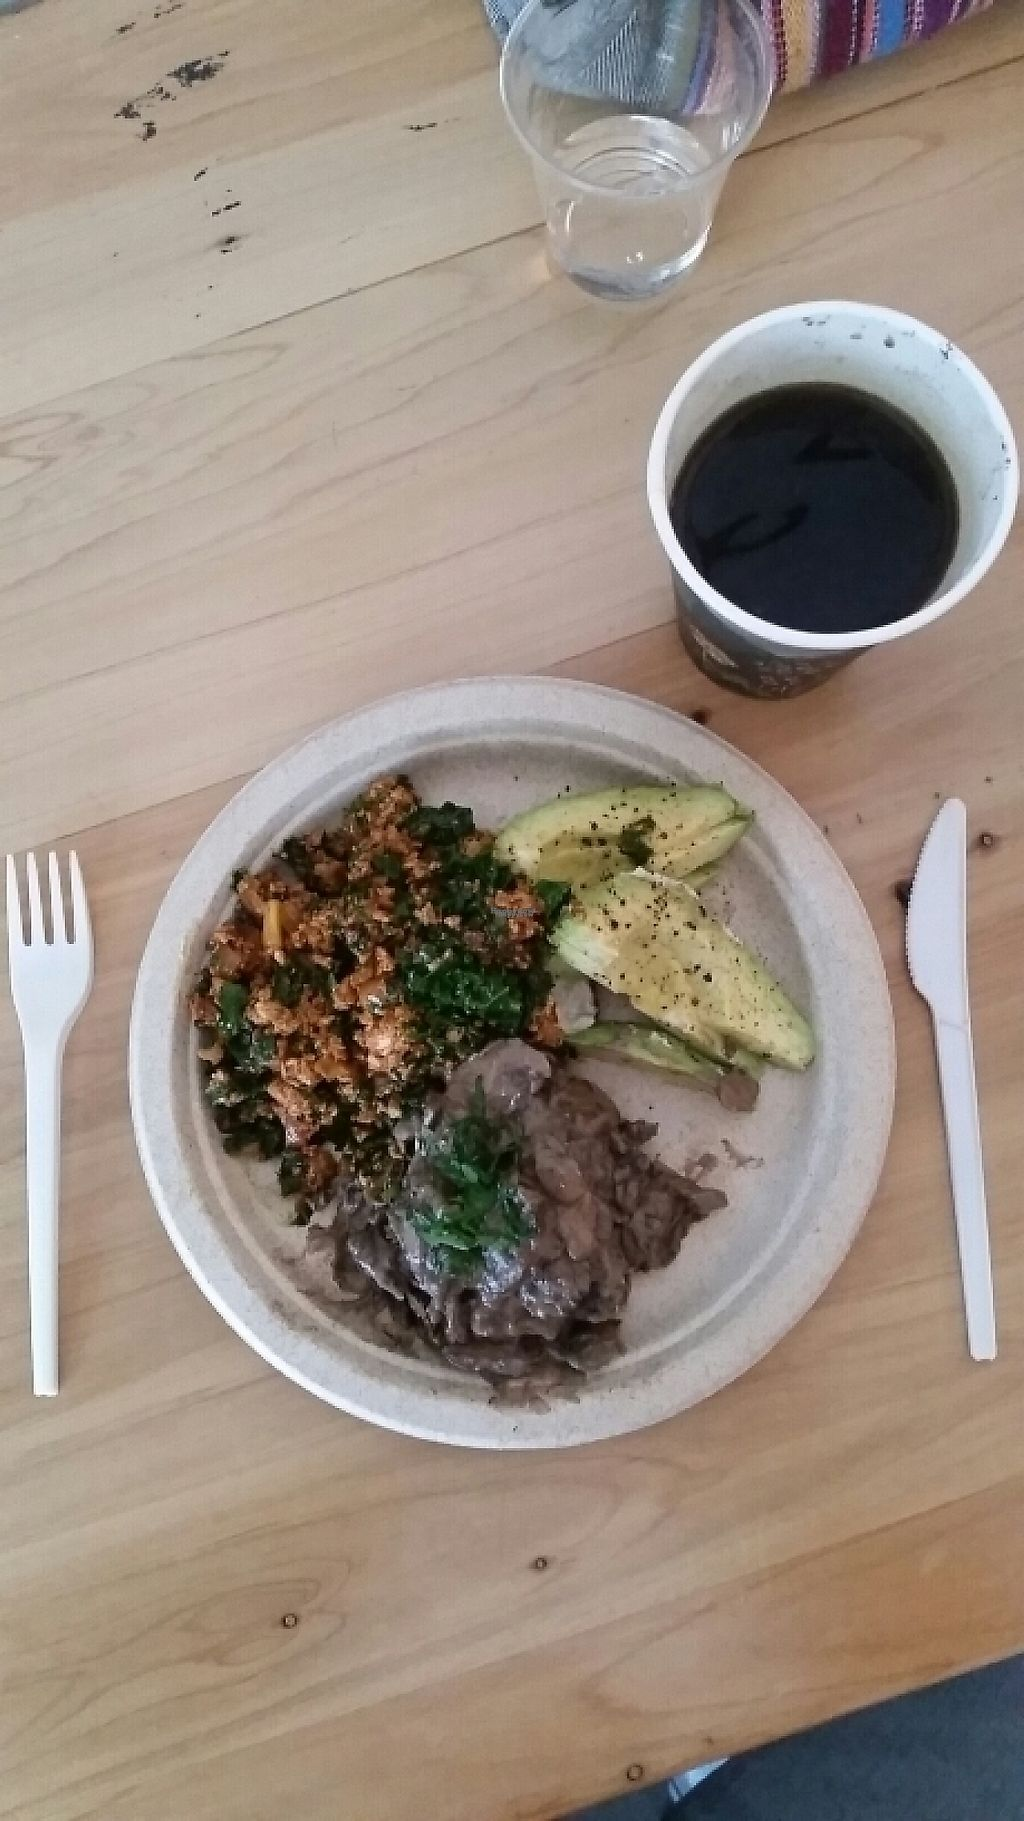 """Photo of Hapi  by <a href=""""/members/profile/AndyTheVWDude"""">AndyTheVWDude</a> <br/>Spicy tofu scramble/kale breakfast <br/> March 22, 2017  - <a href='/contact/abuse/image/69671/239610'>Report</a>"""